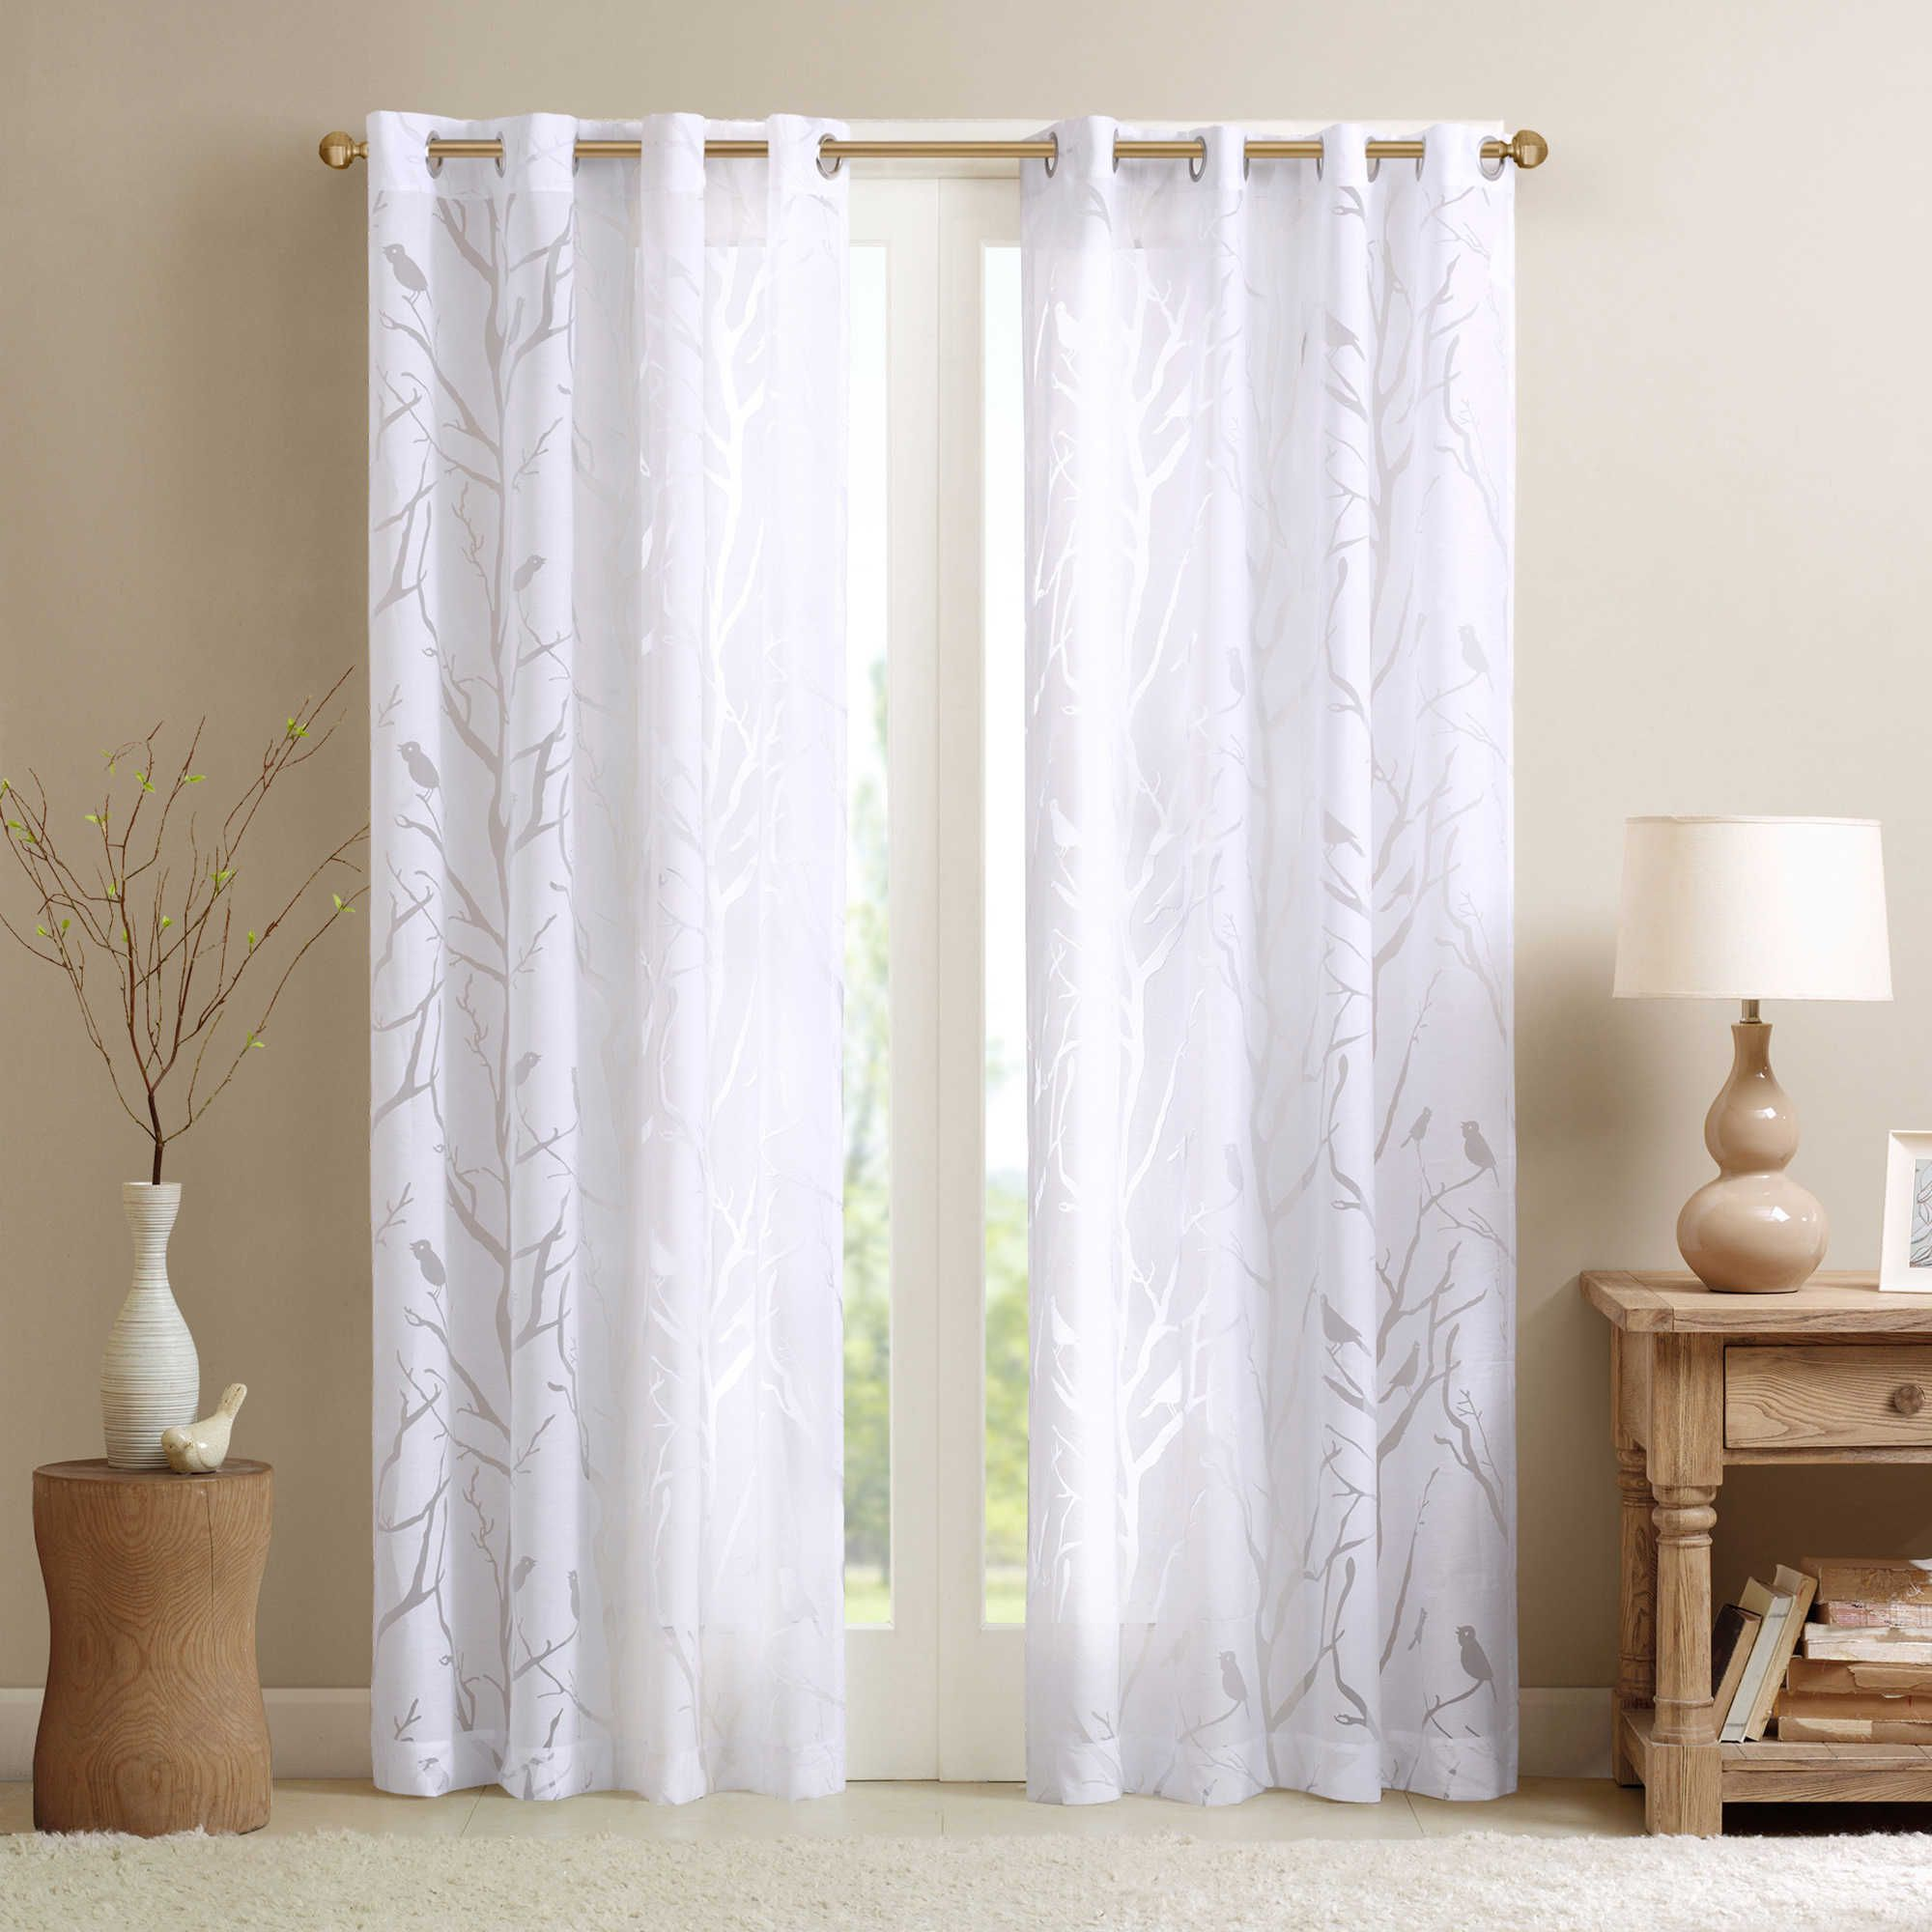 White Sheer Door Panel Curtains Madison Park Averil Sheer Bird 63 Inch Grommet Top Window